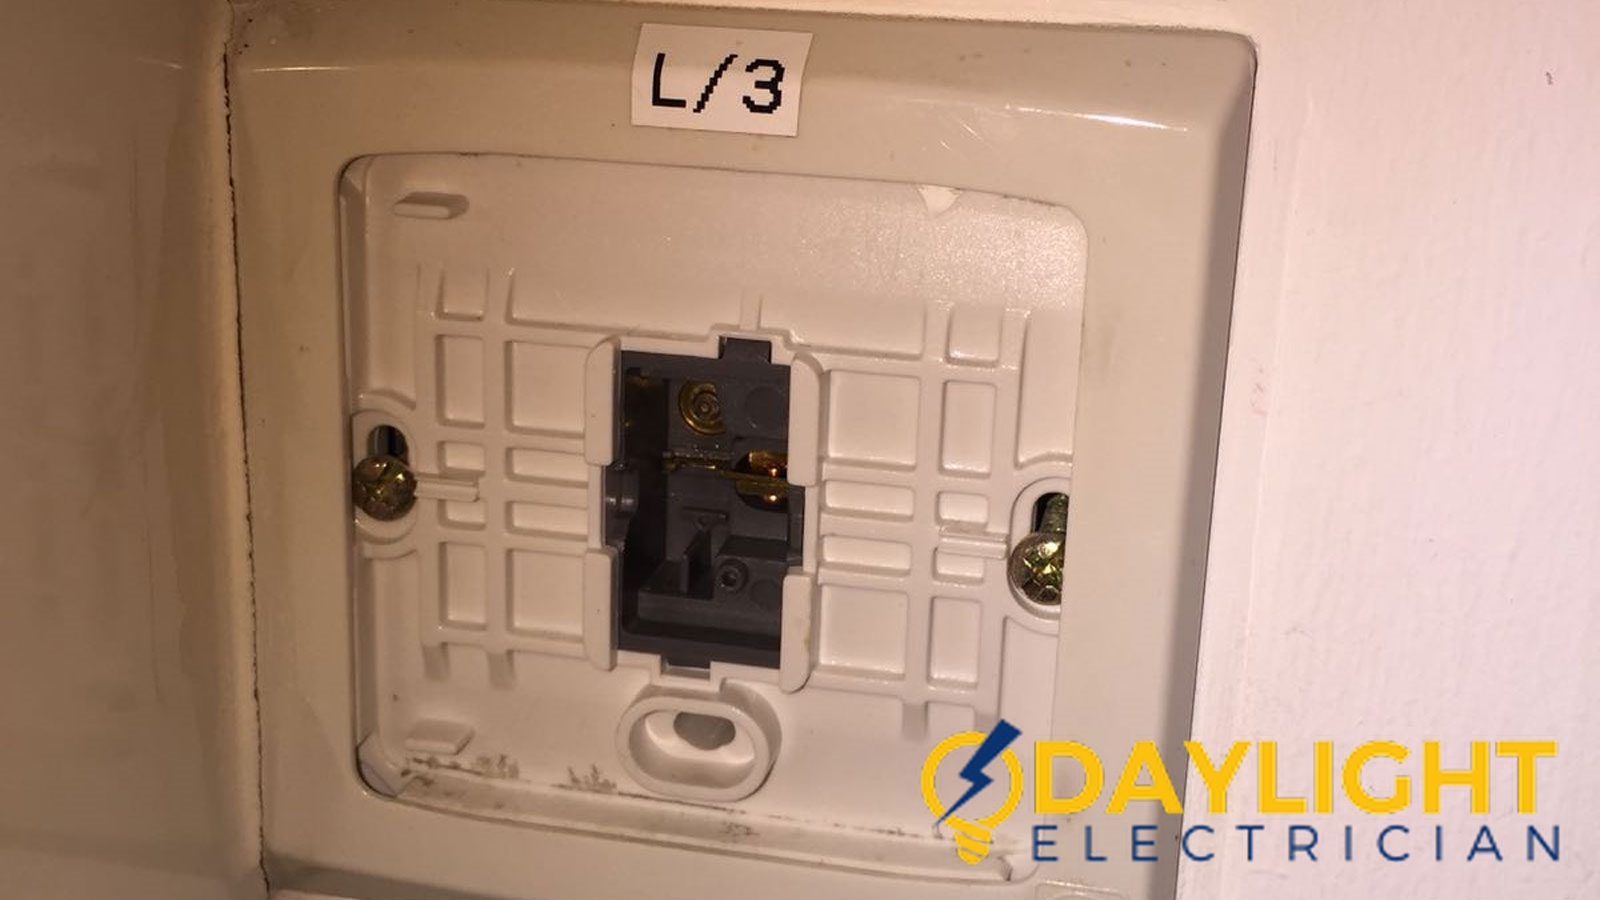 light switch repair daylight electrician singapore hdb ubi 2 wm